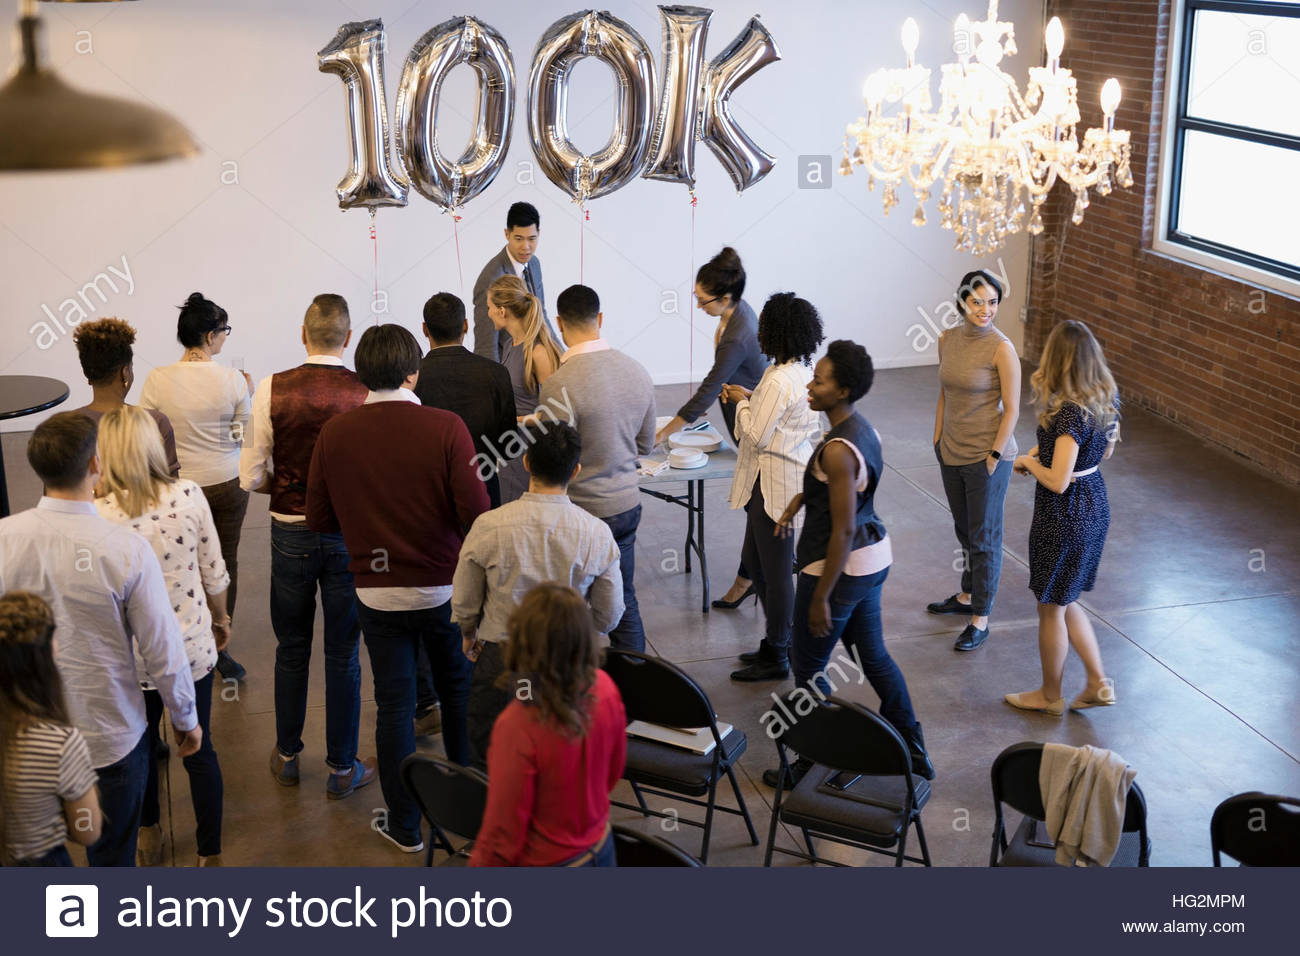 Business people networking celebrating milestone in conference room - Stock Image